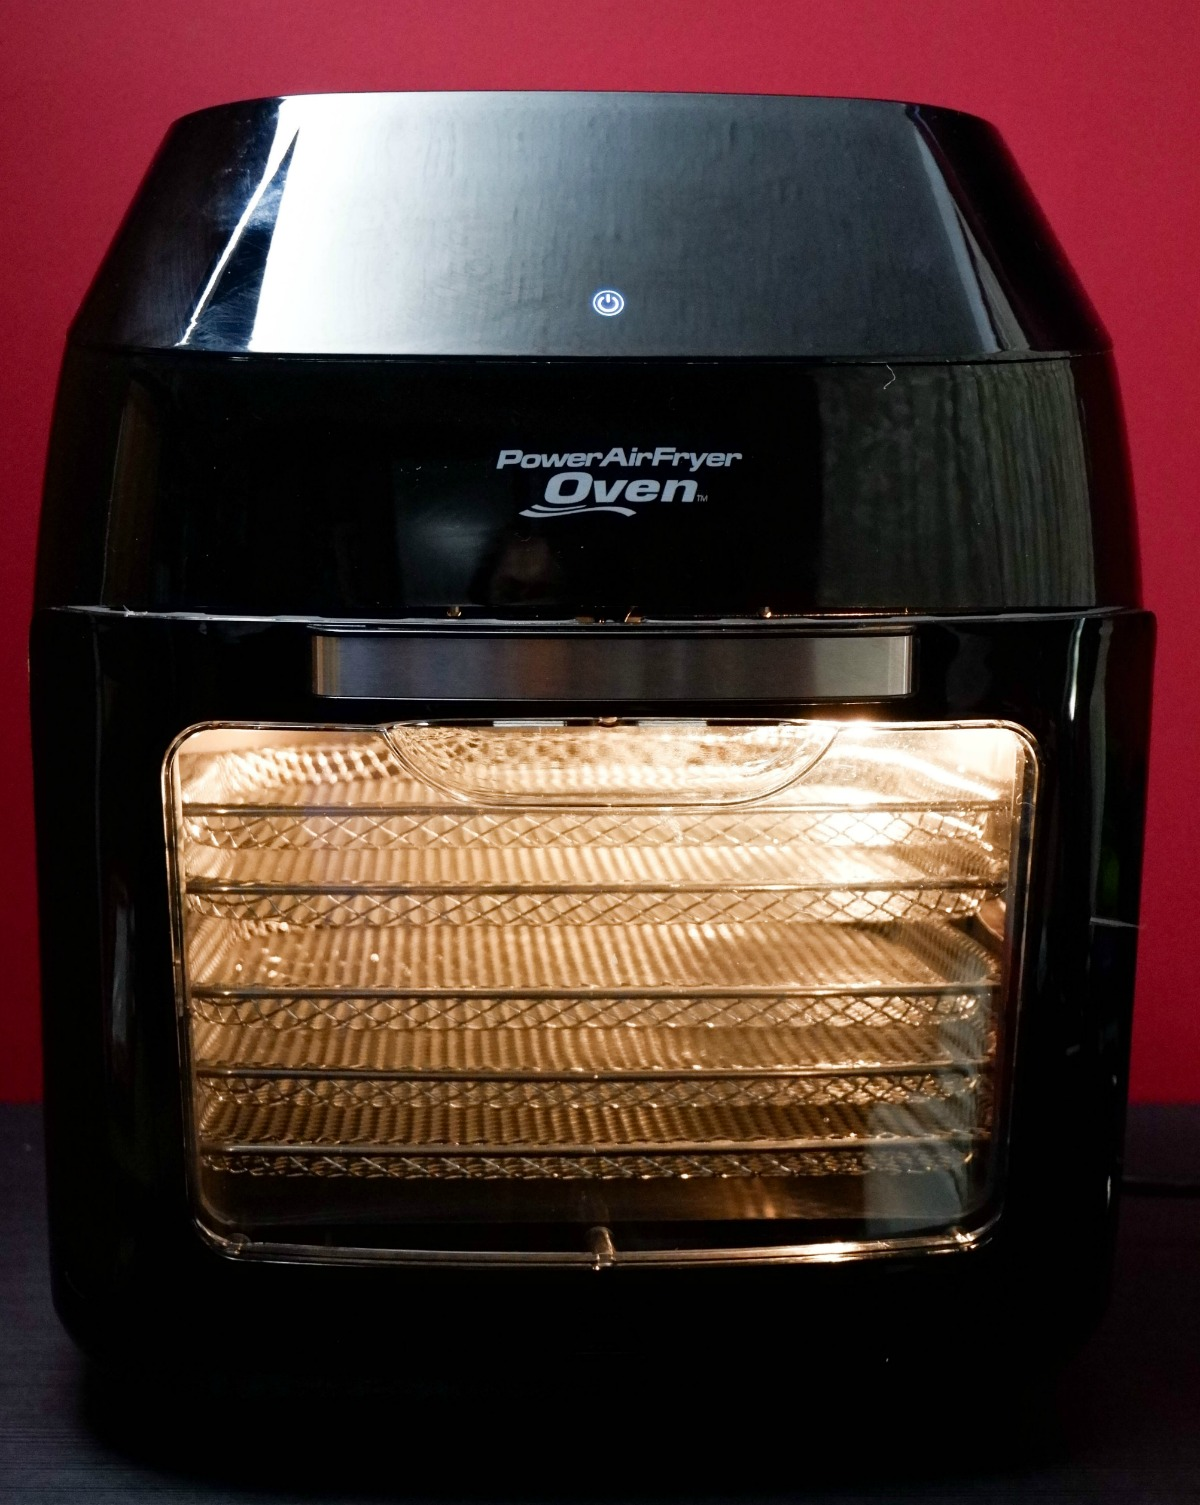 Power Air Fryer Oven Air Fry, Rotisserie & Dehydrate To Perfection With 360º Air Flow Technology